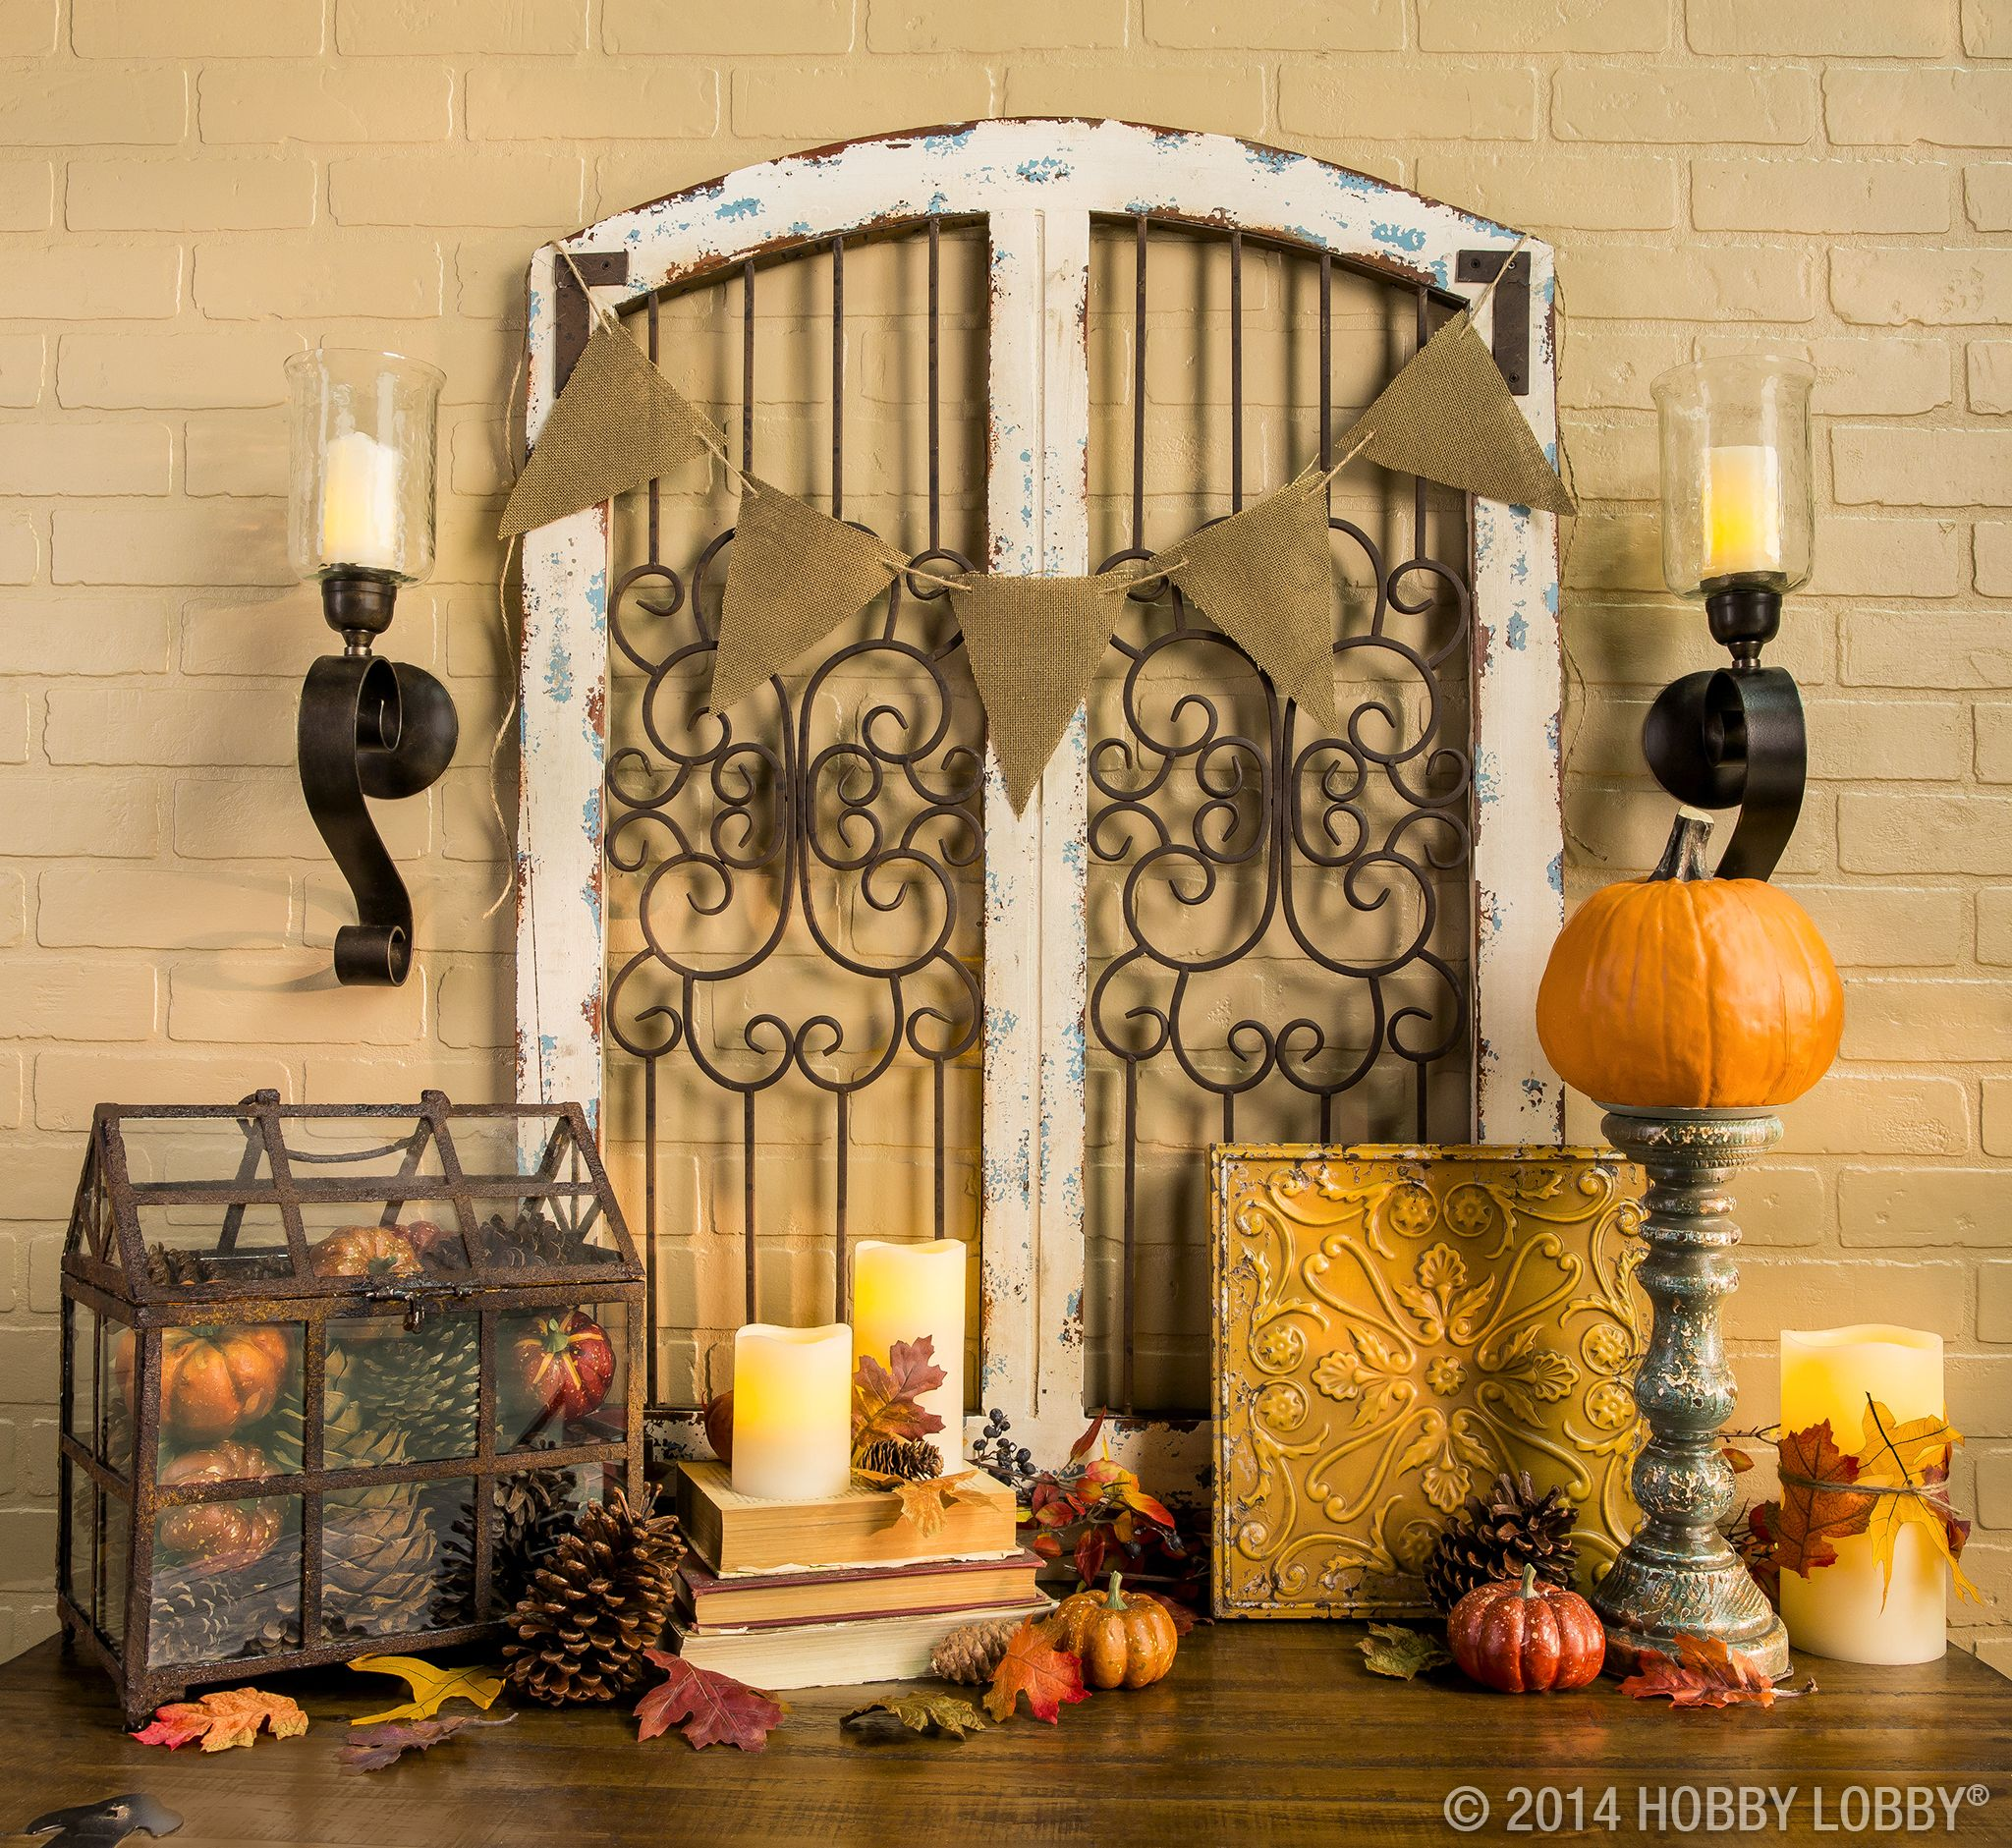 Pair metal wall art and sconces for an elegant focal point within - Hobby Lobby Halloween Decorations